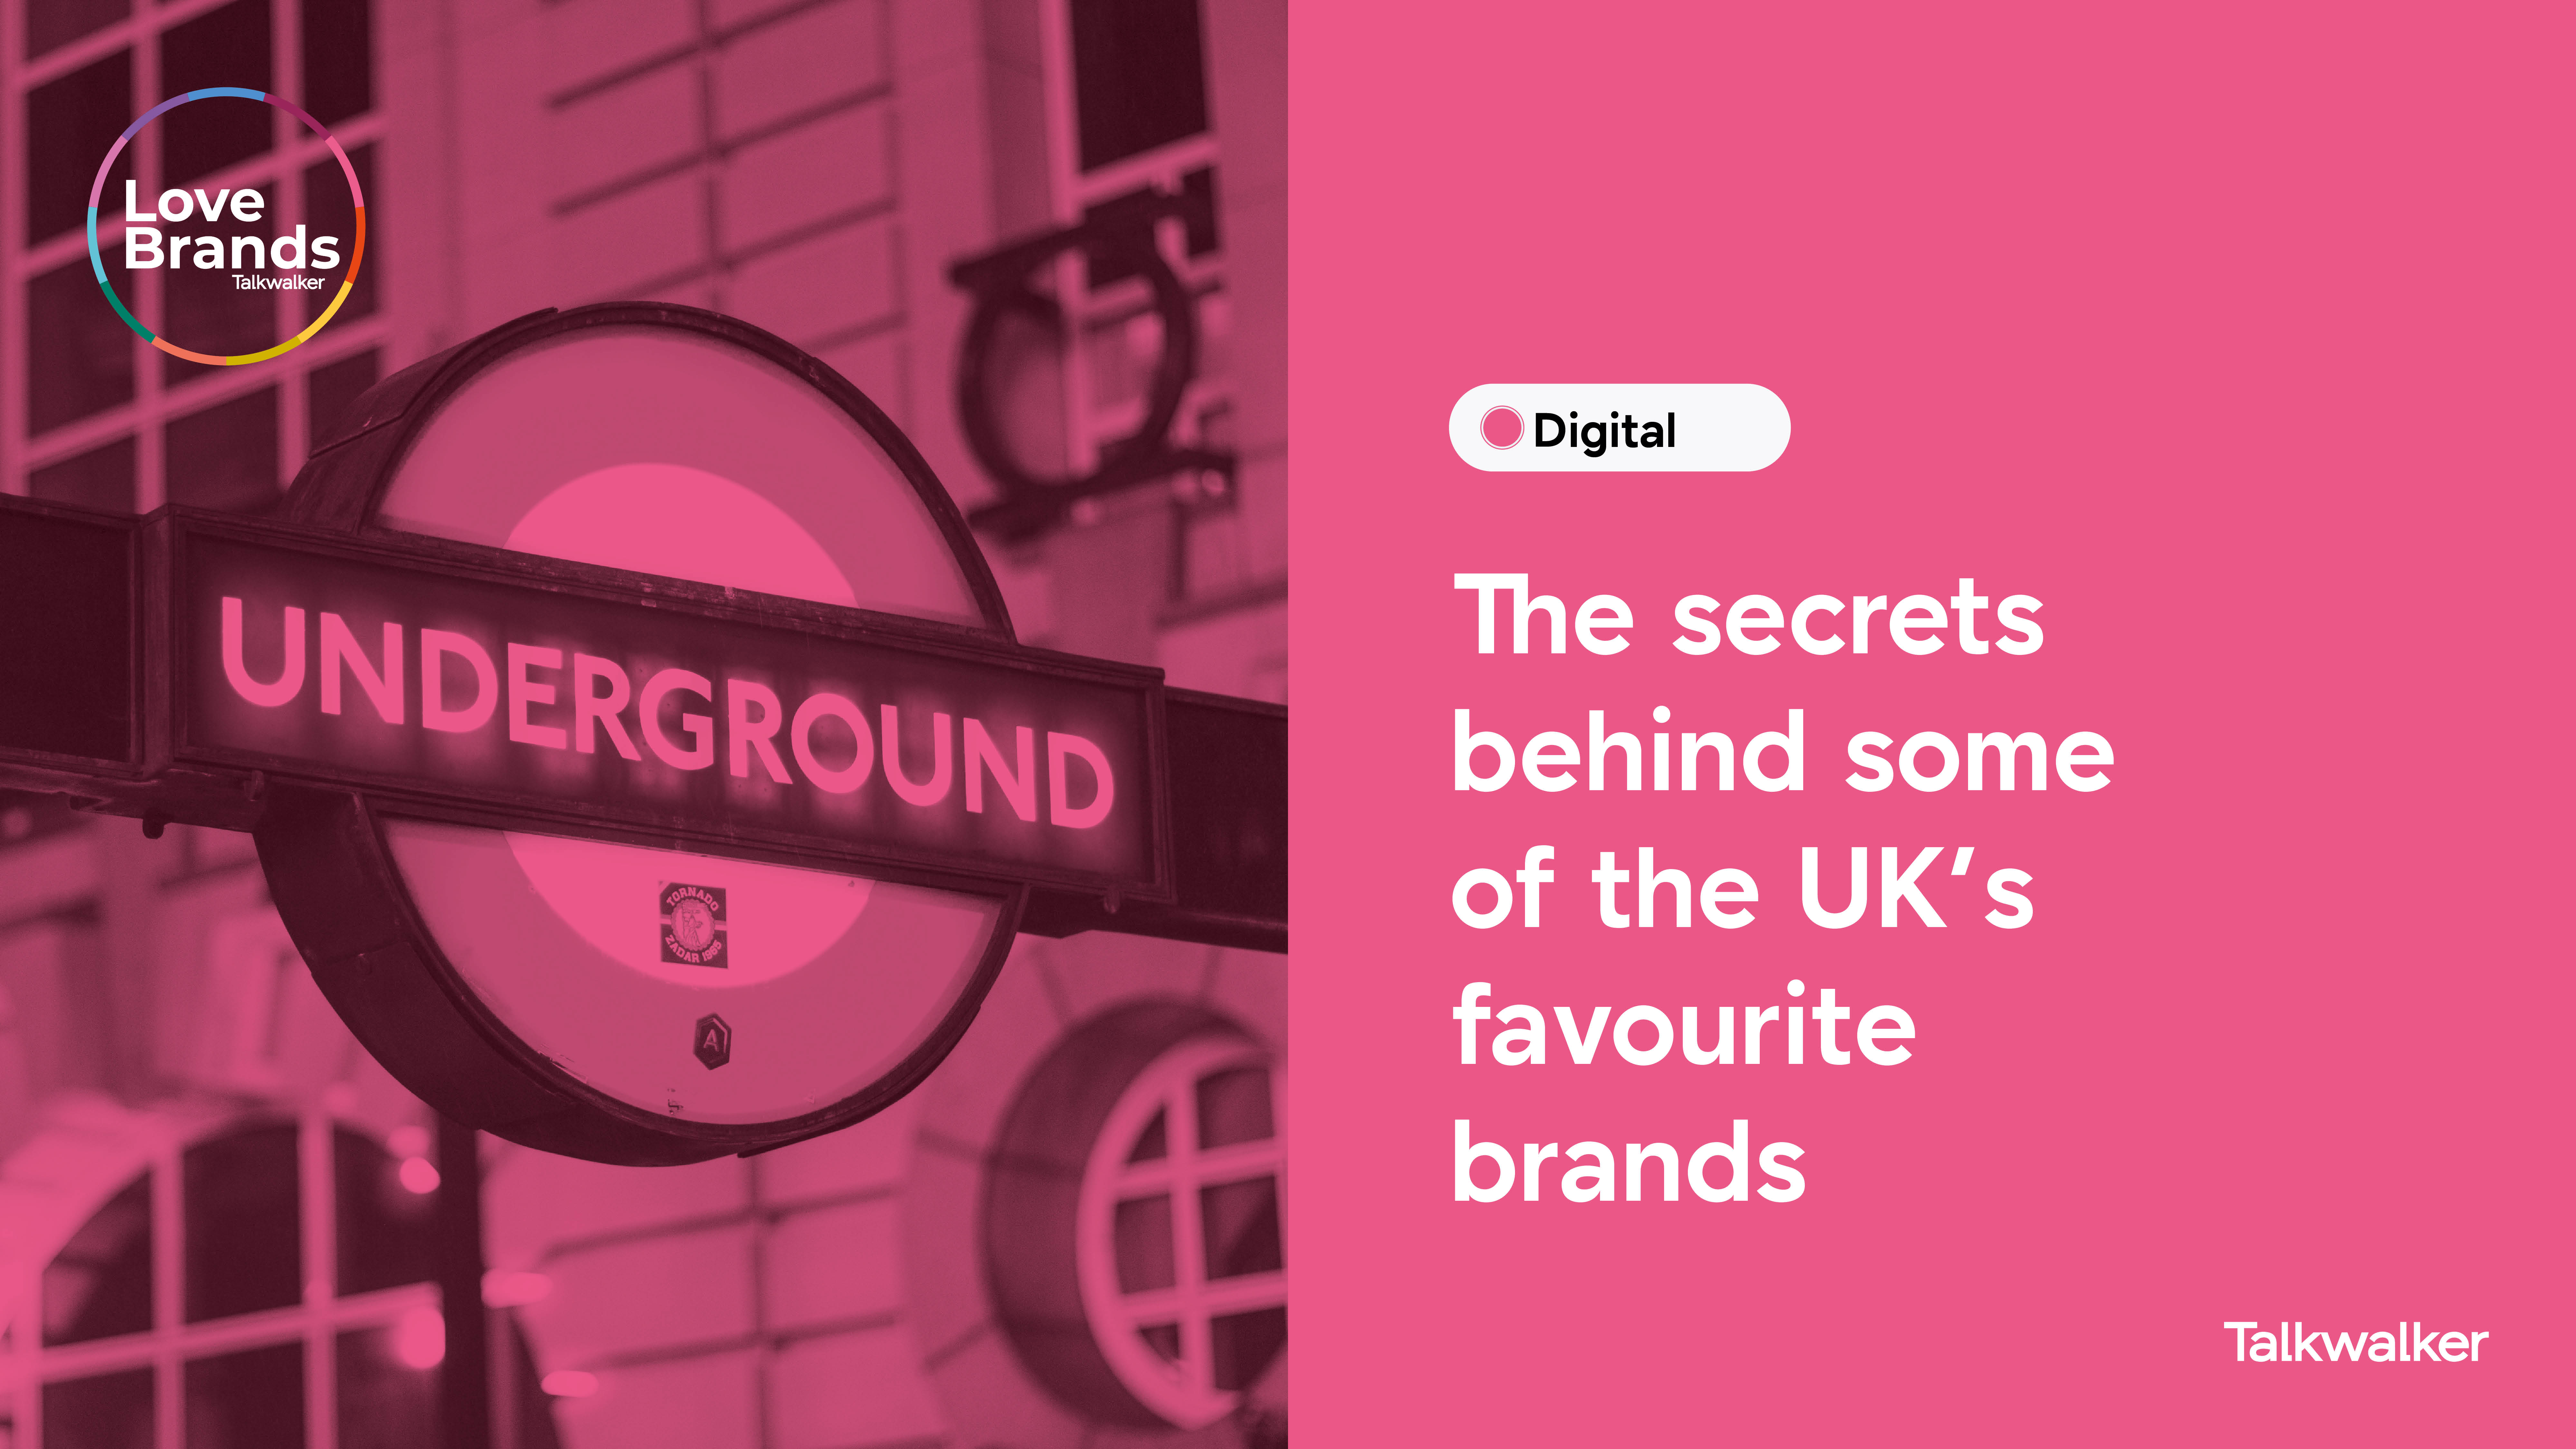 The secrets behind some of the UK's favourite brands with iconic London image